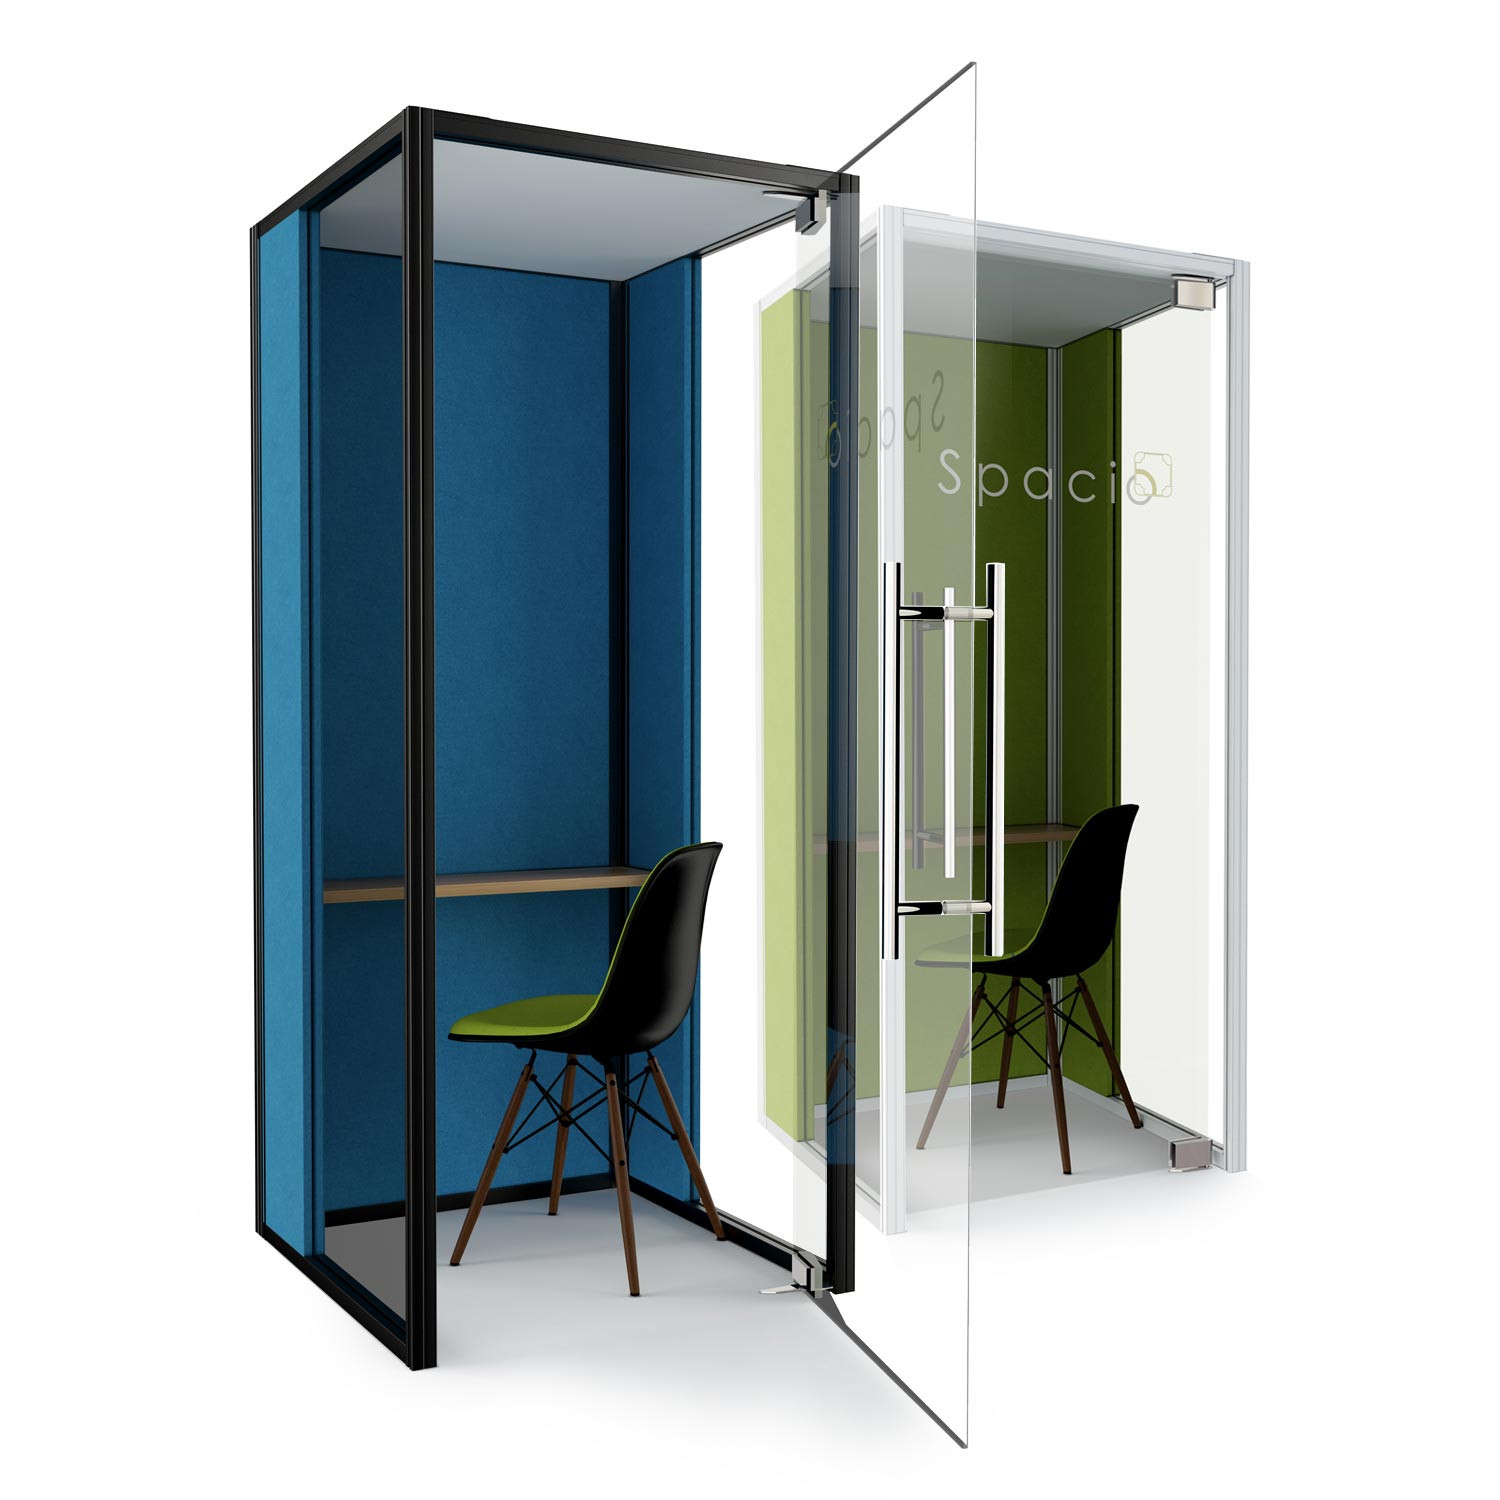 Spacio Lite Phone Booth Office Phone Pod Apres Furniture